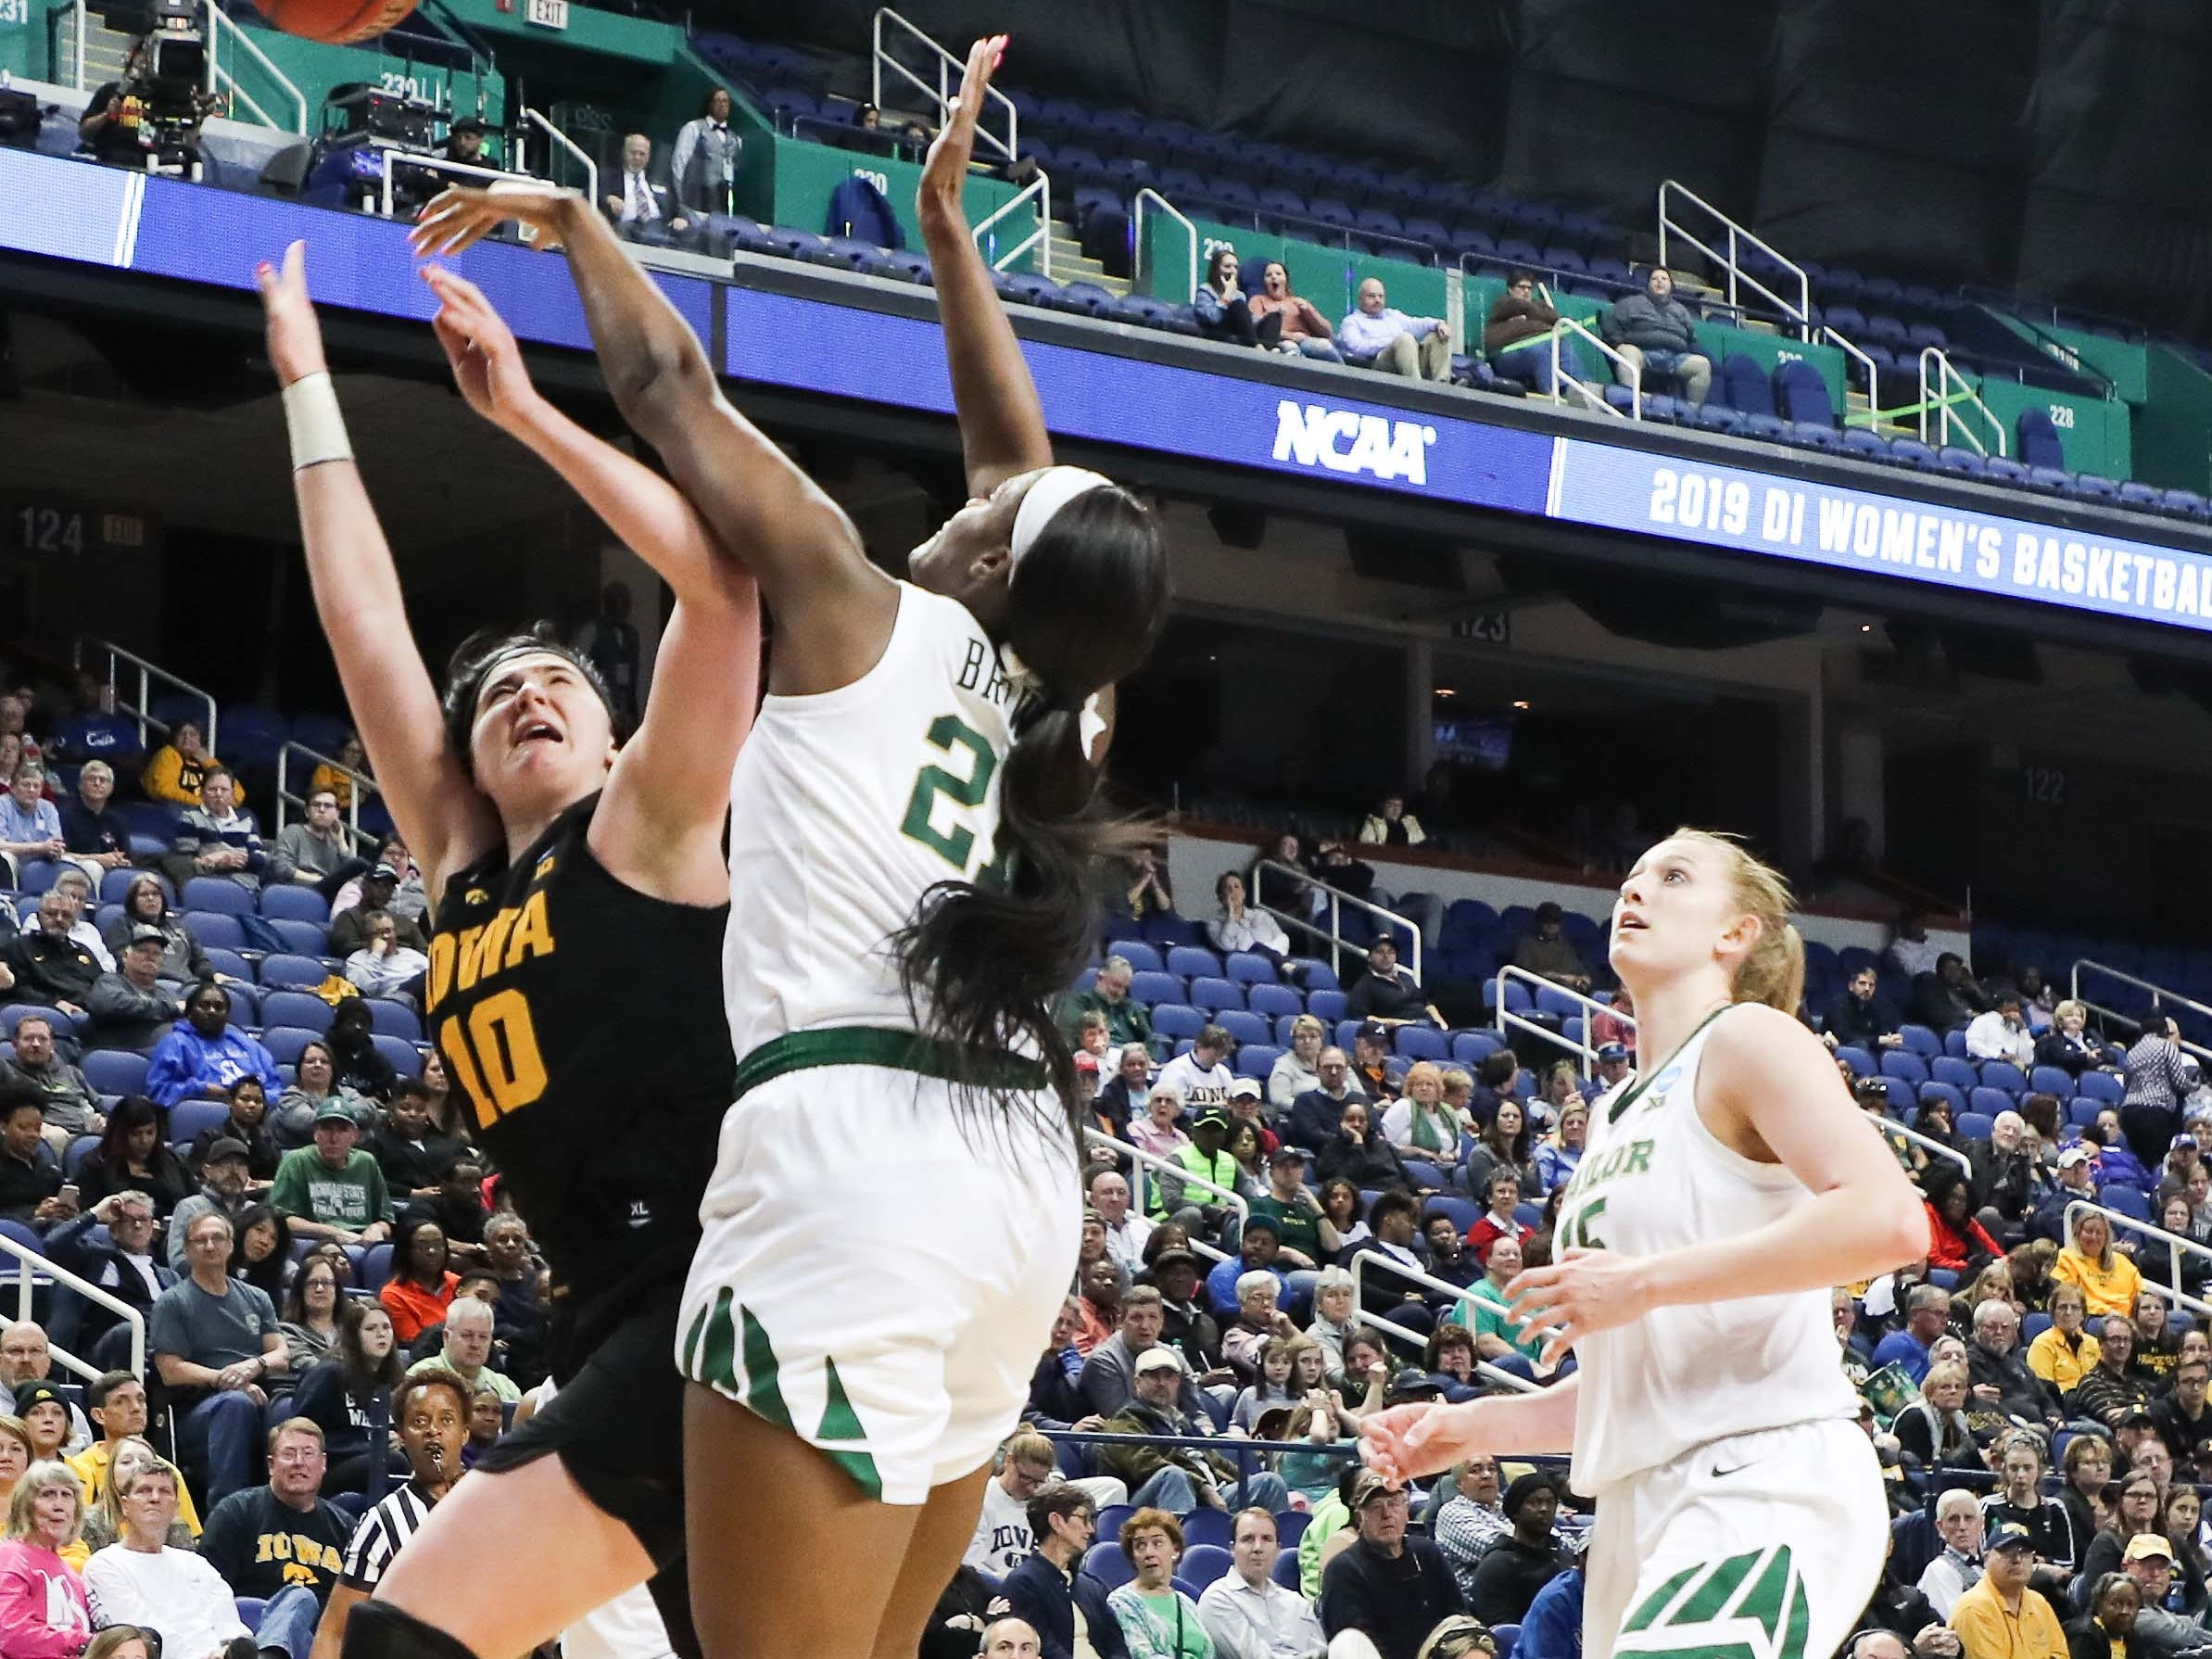 Baylor Lady Bears center Kalani Brown (21) blocks a shot by Iowa Hawkeyes forward Megan Gustafson (10) during the second half in the championship game of the Greensboro regional in the women's 2019 NCAA Tournament at the Greensboro Coliseum.